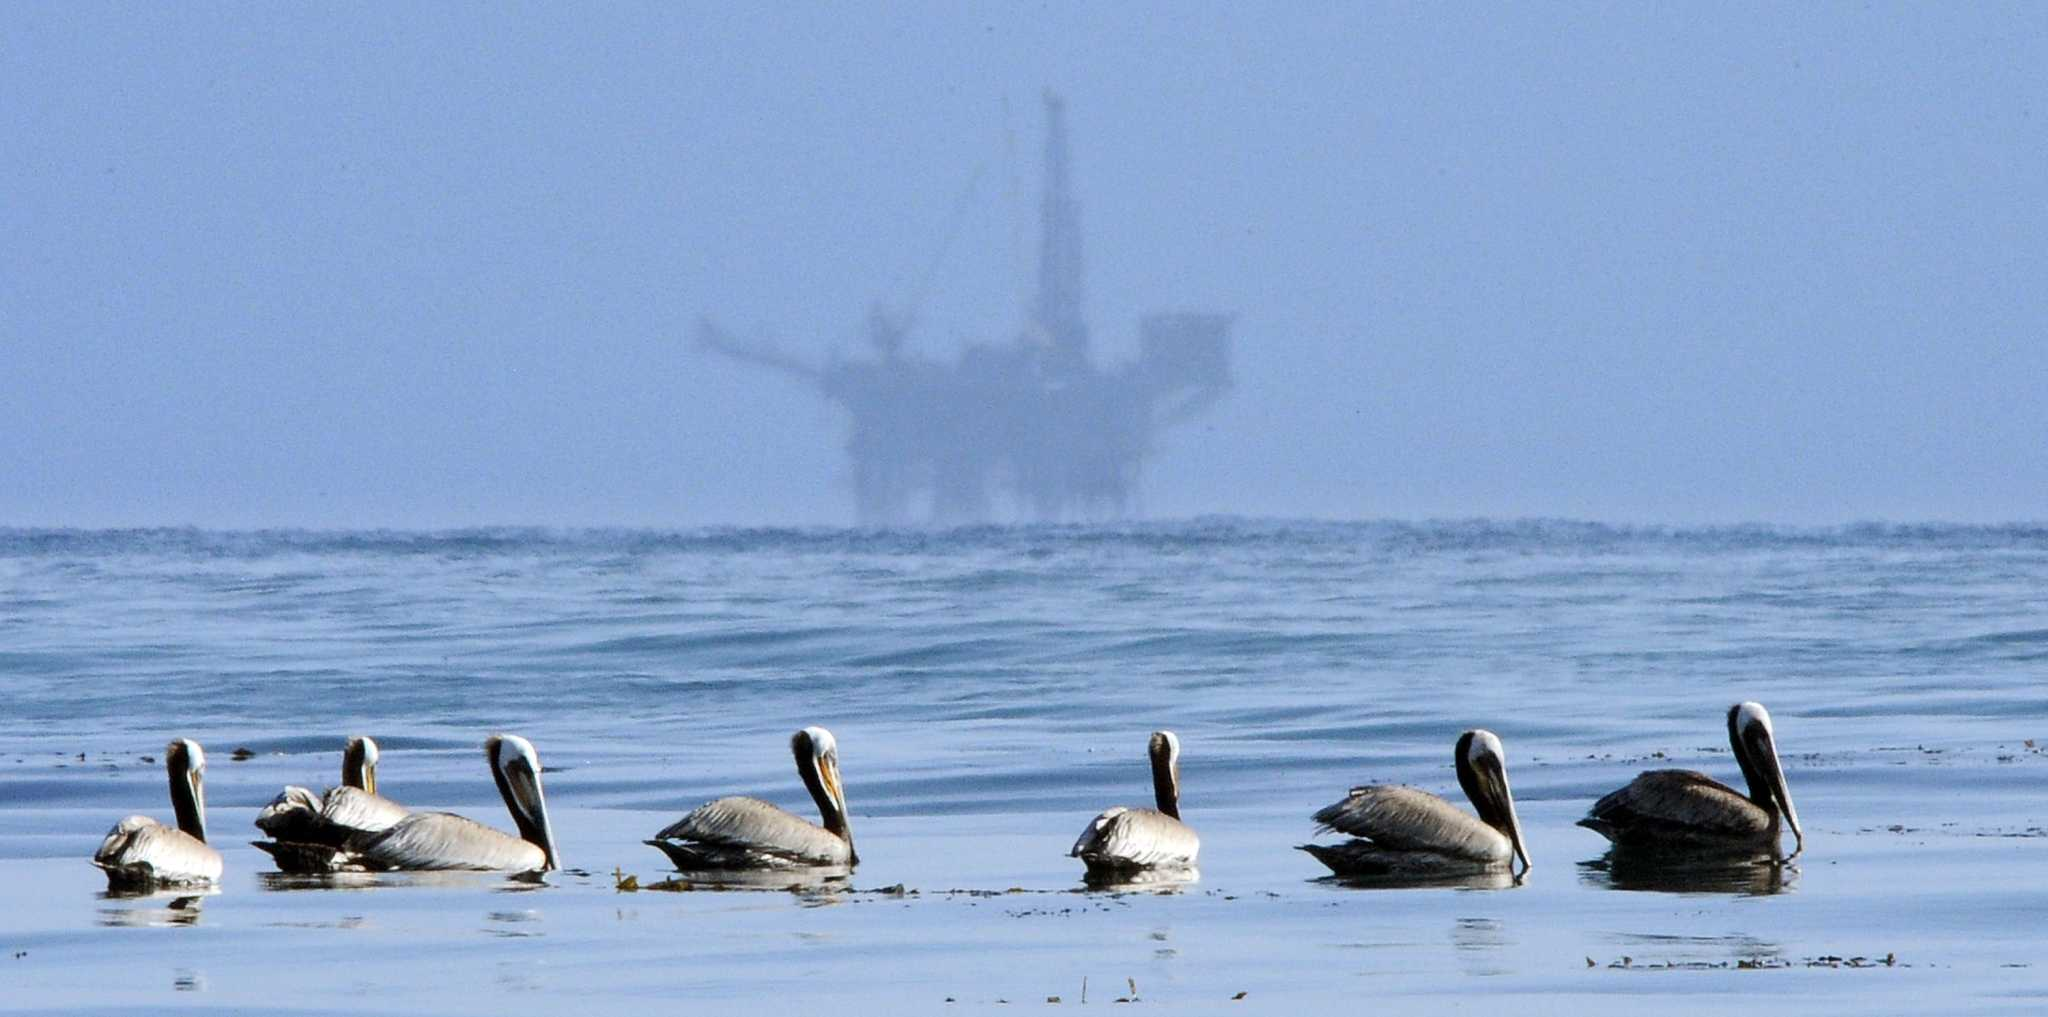 houstonchronicle.com - James Osborne - Shutdown leaves oil and gas unscathed, but for how long?